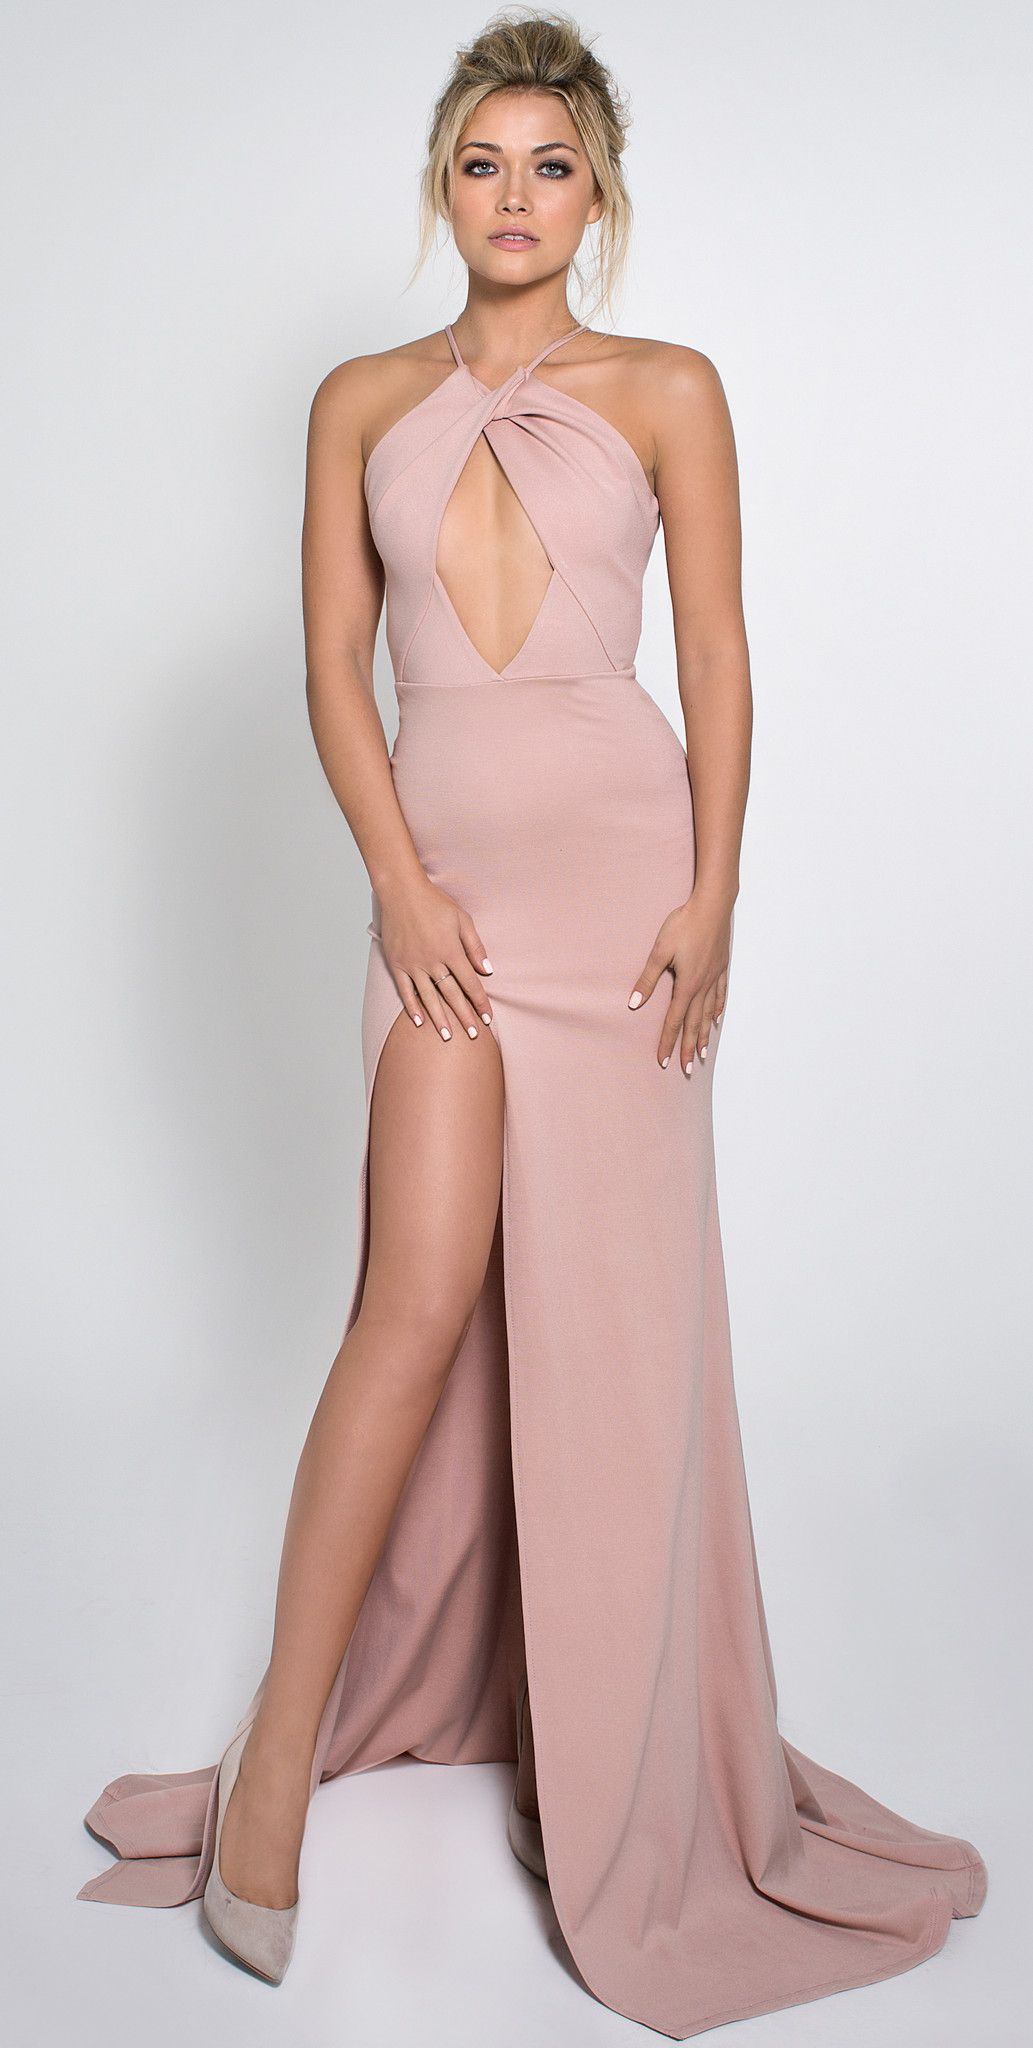 AZTECK GOWN | Formal Fashion | Pinterest | Vestiditos